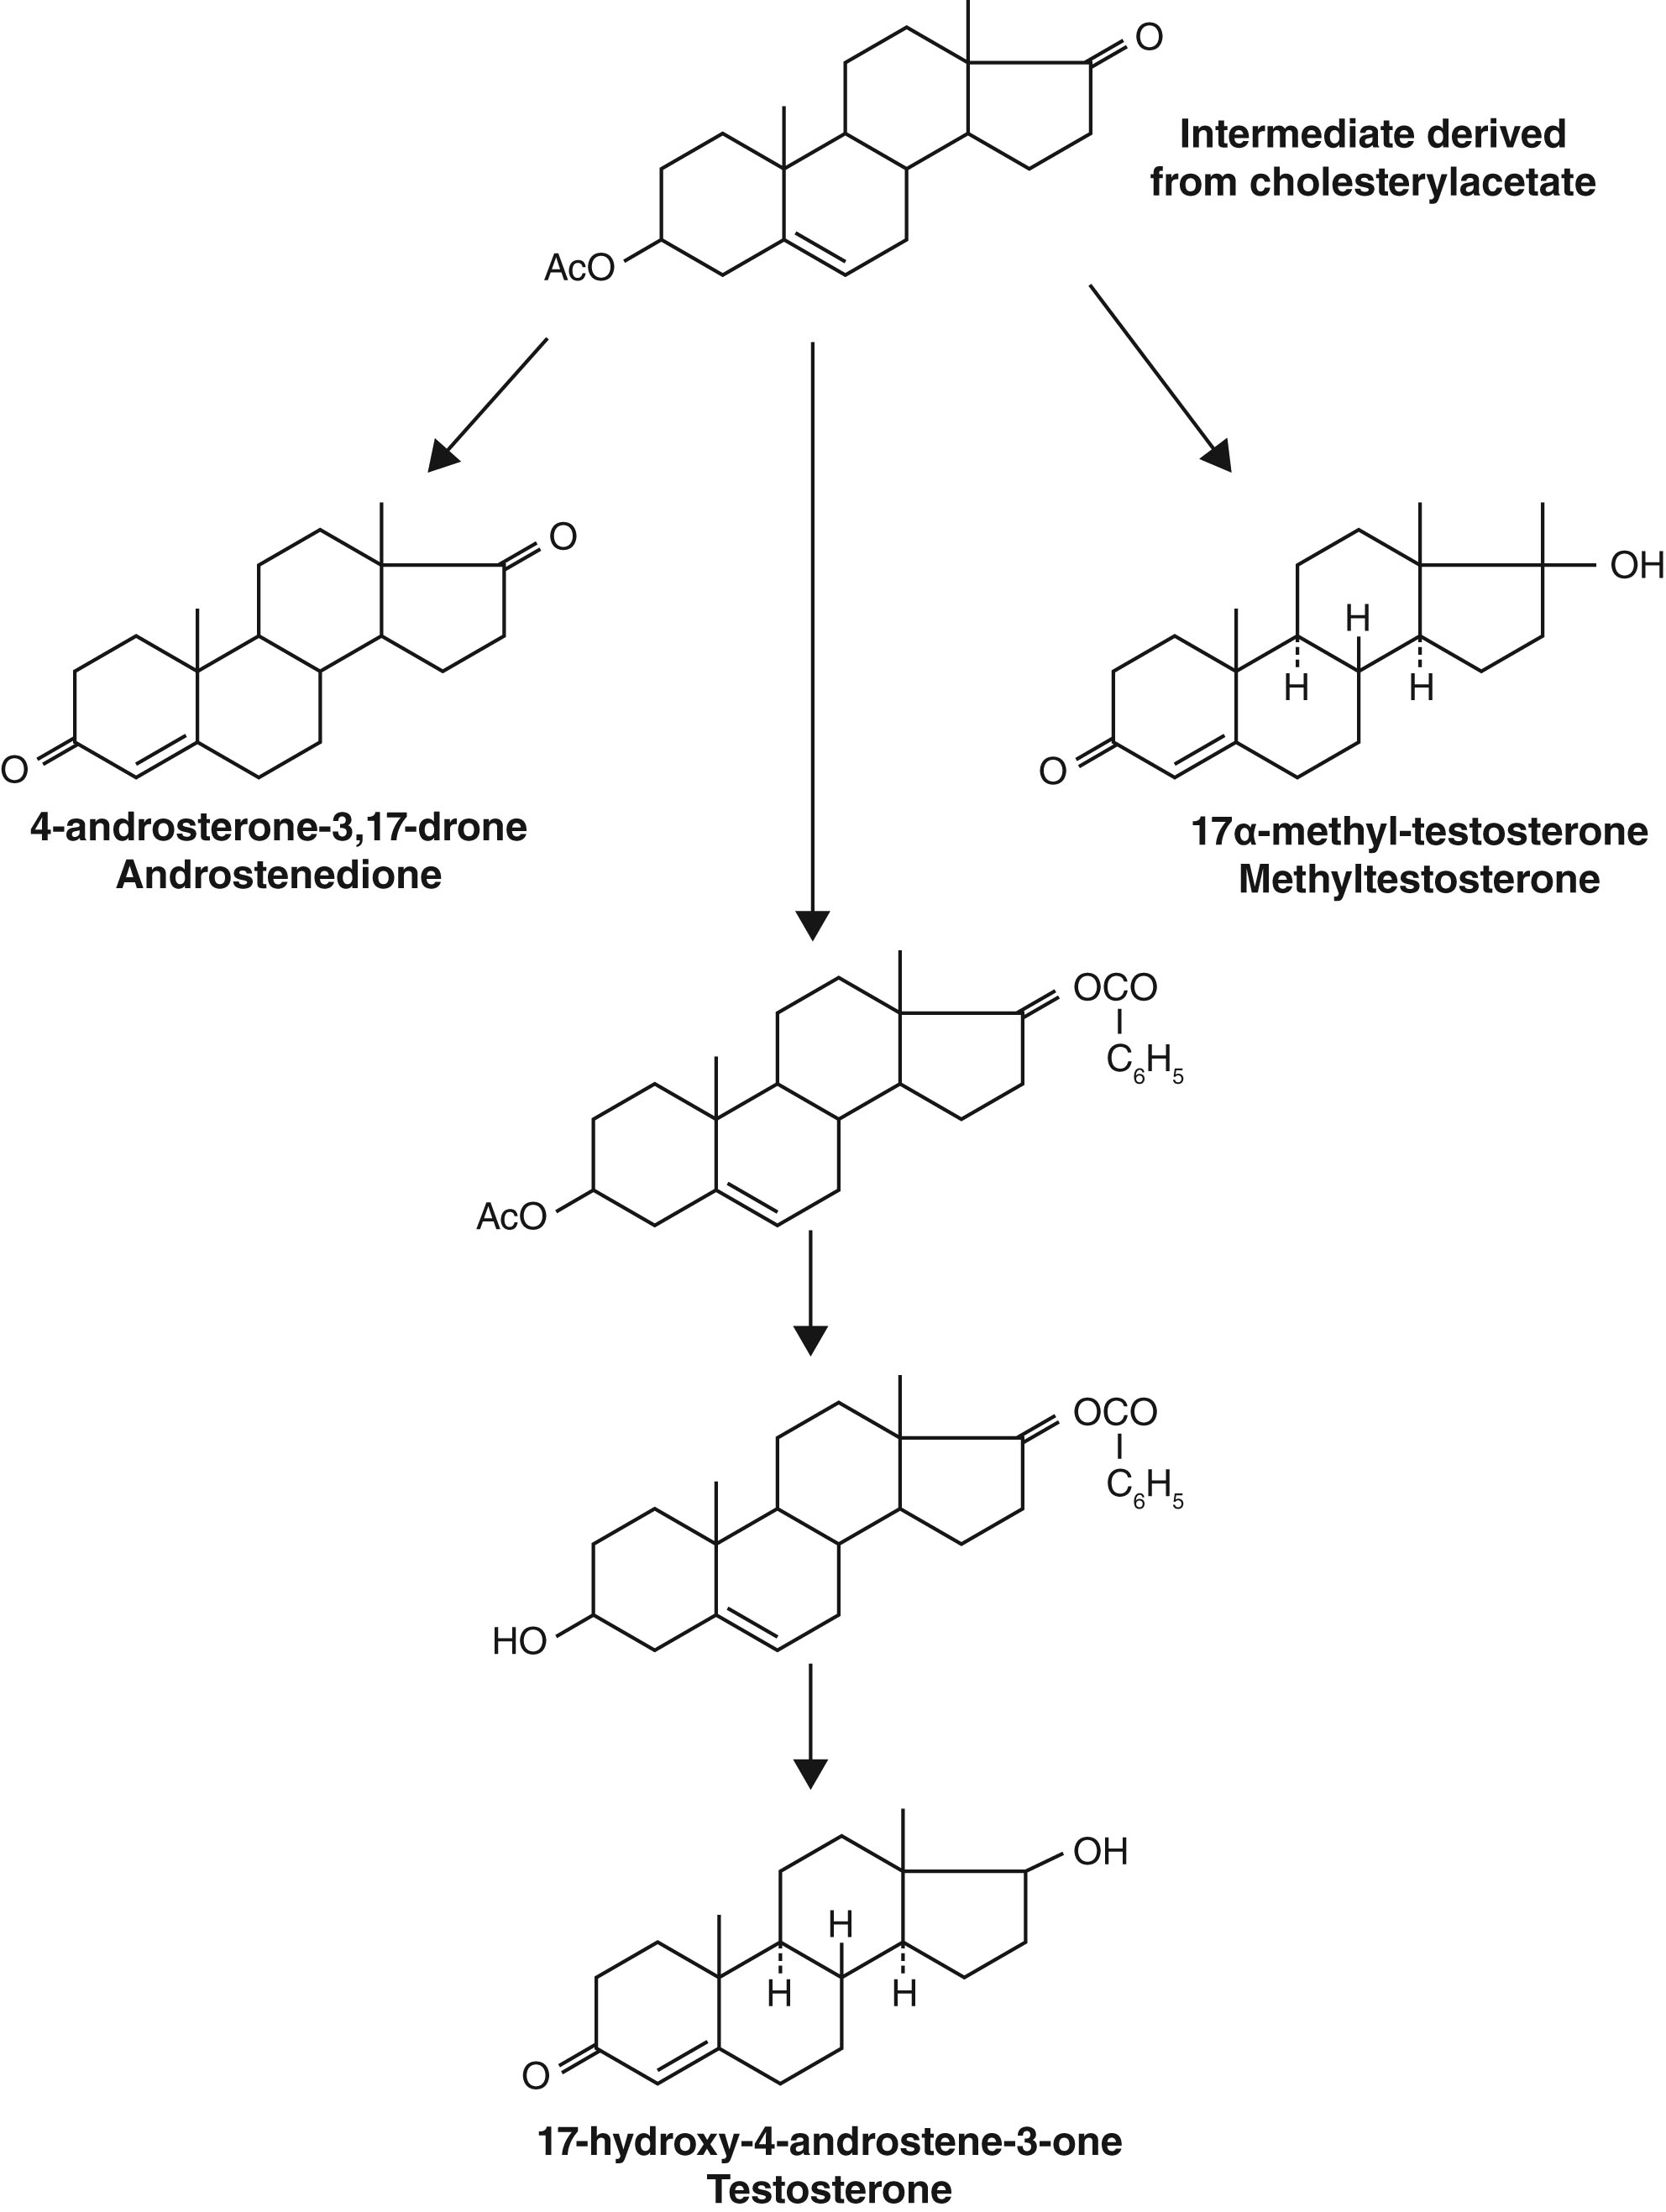 Endocrine History The History Of Discovery Synthesis And Development Of Testosterone For Clinical Use In European Journal Of Endocrinology Volume 180 Issue 6 2019